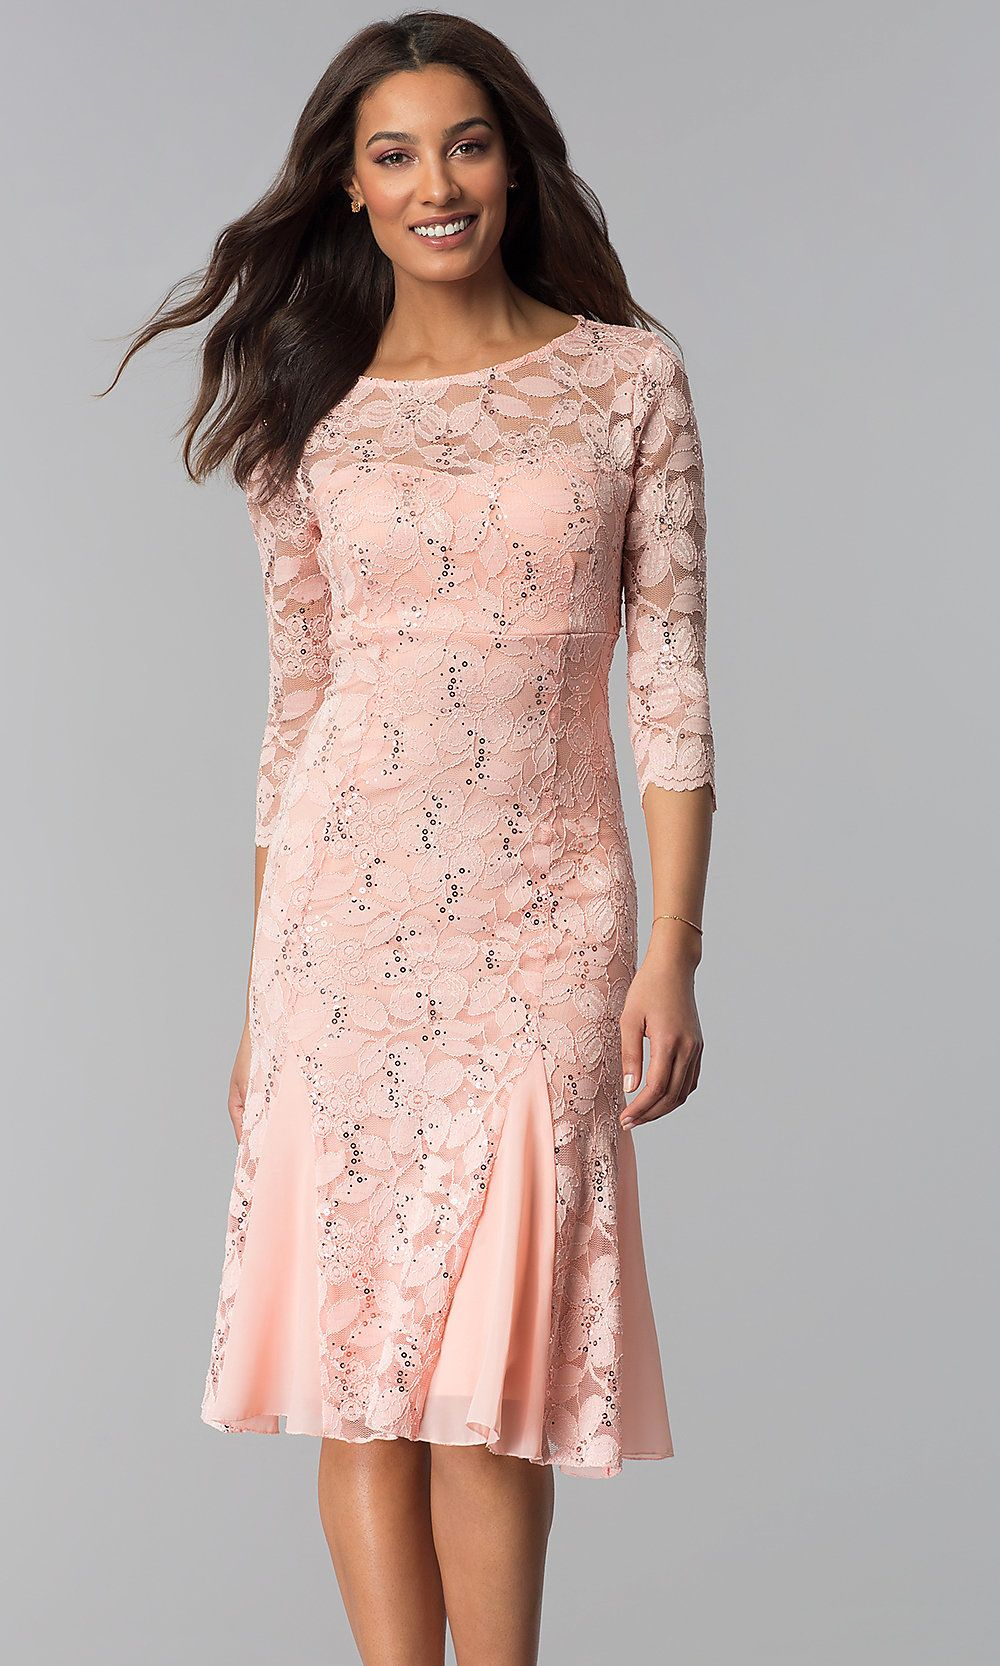 ScoopNeck Lace WeddingGuest Dress with Sleeves Dresses